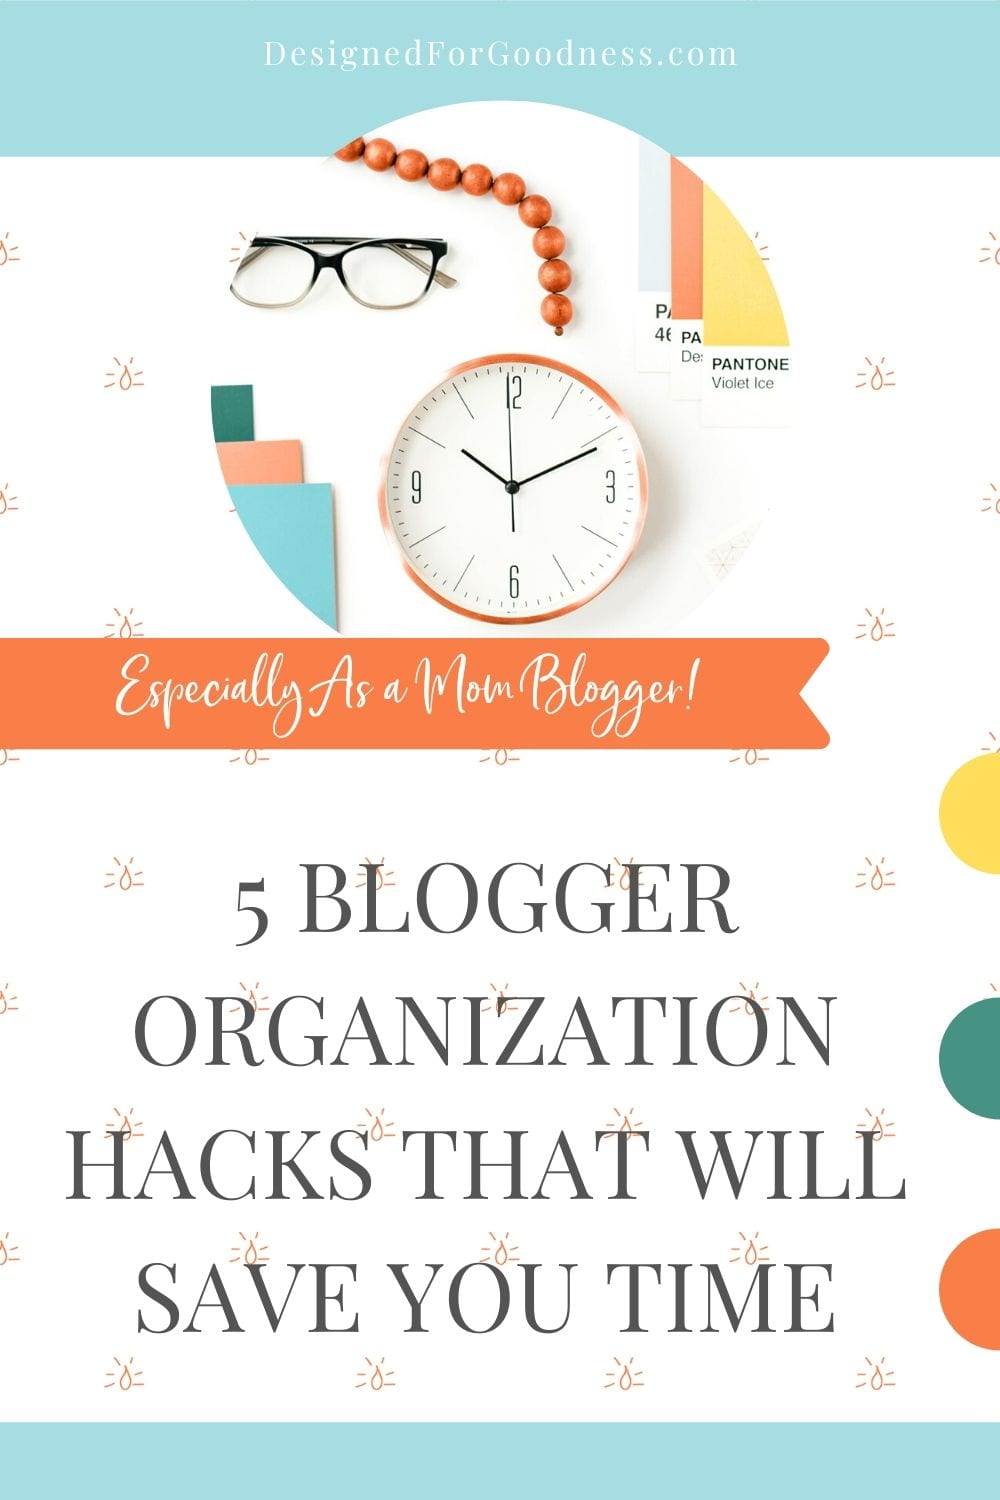 5 quick blogging hacks that will save you time as a mom